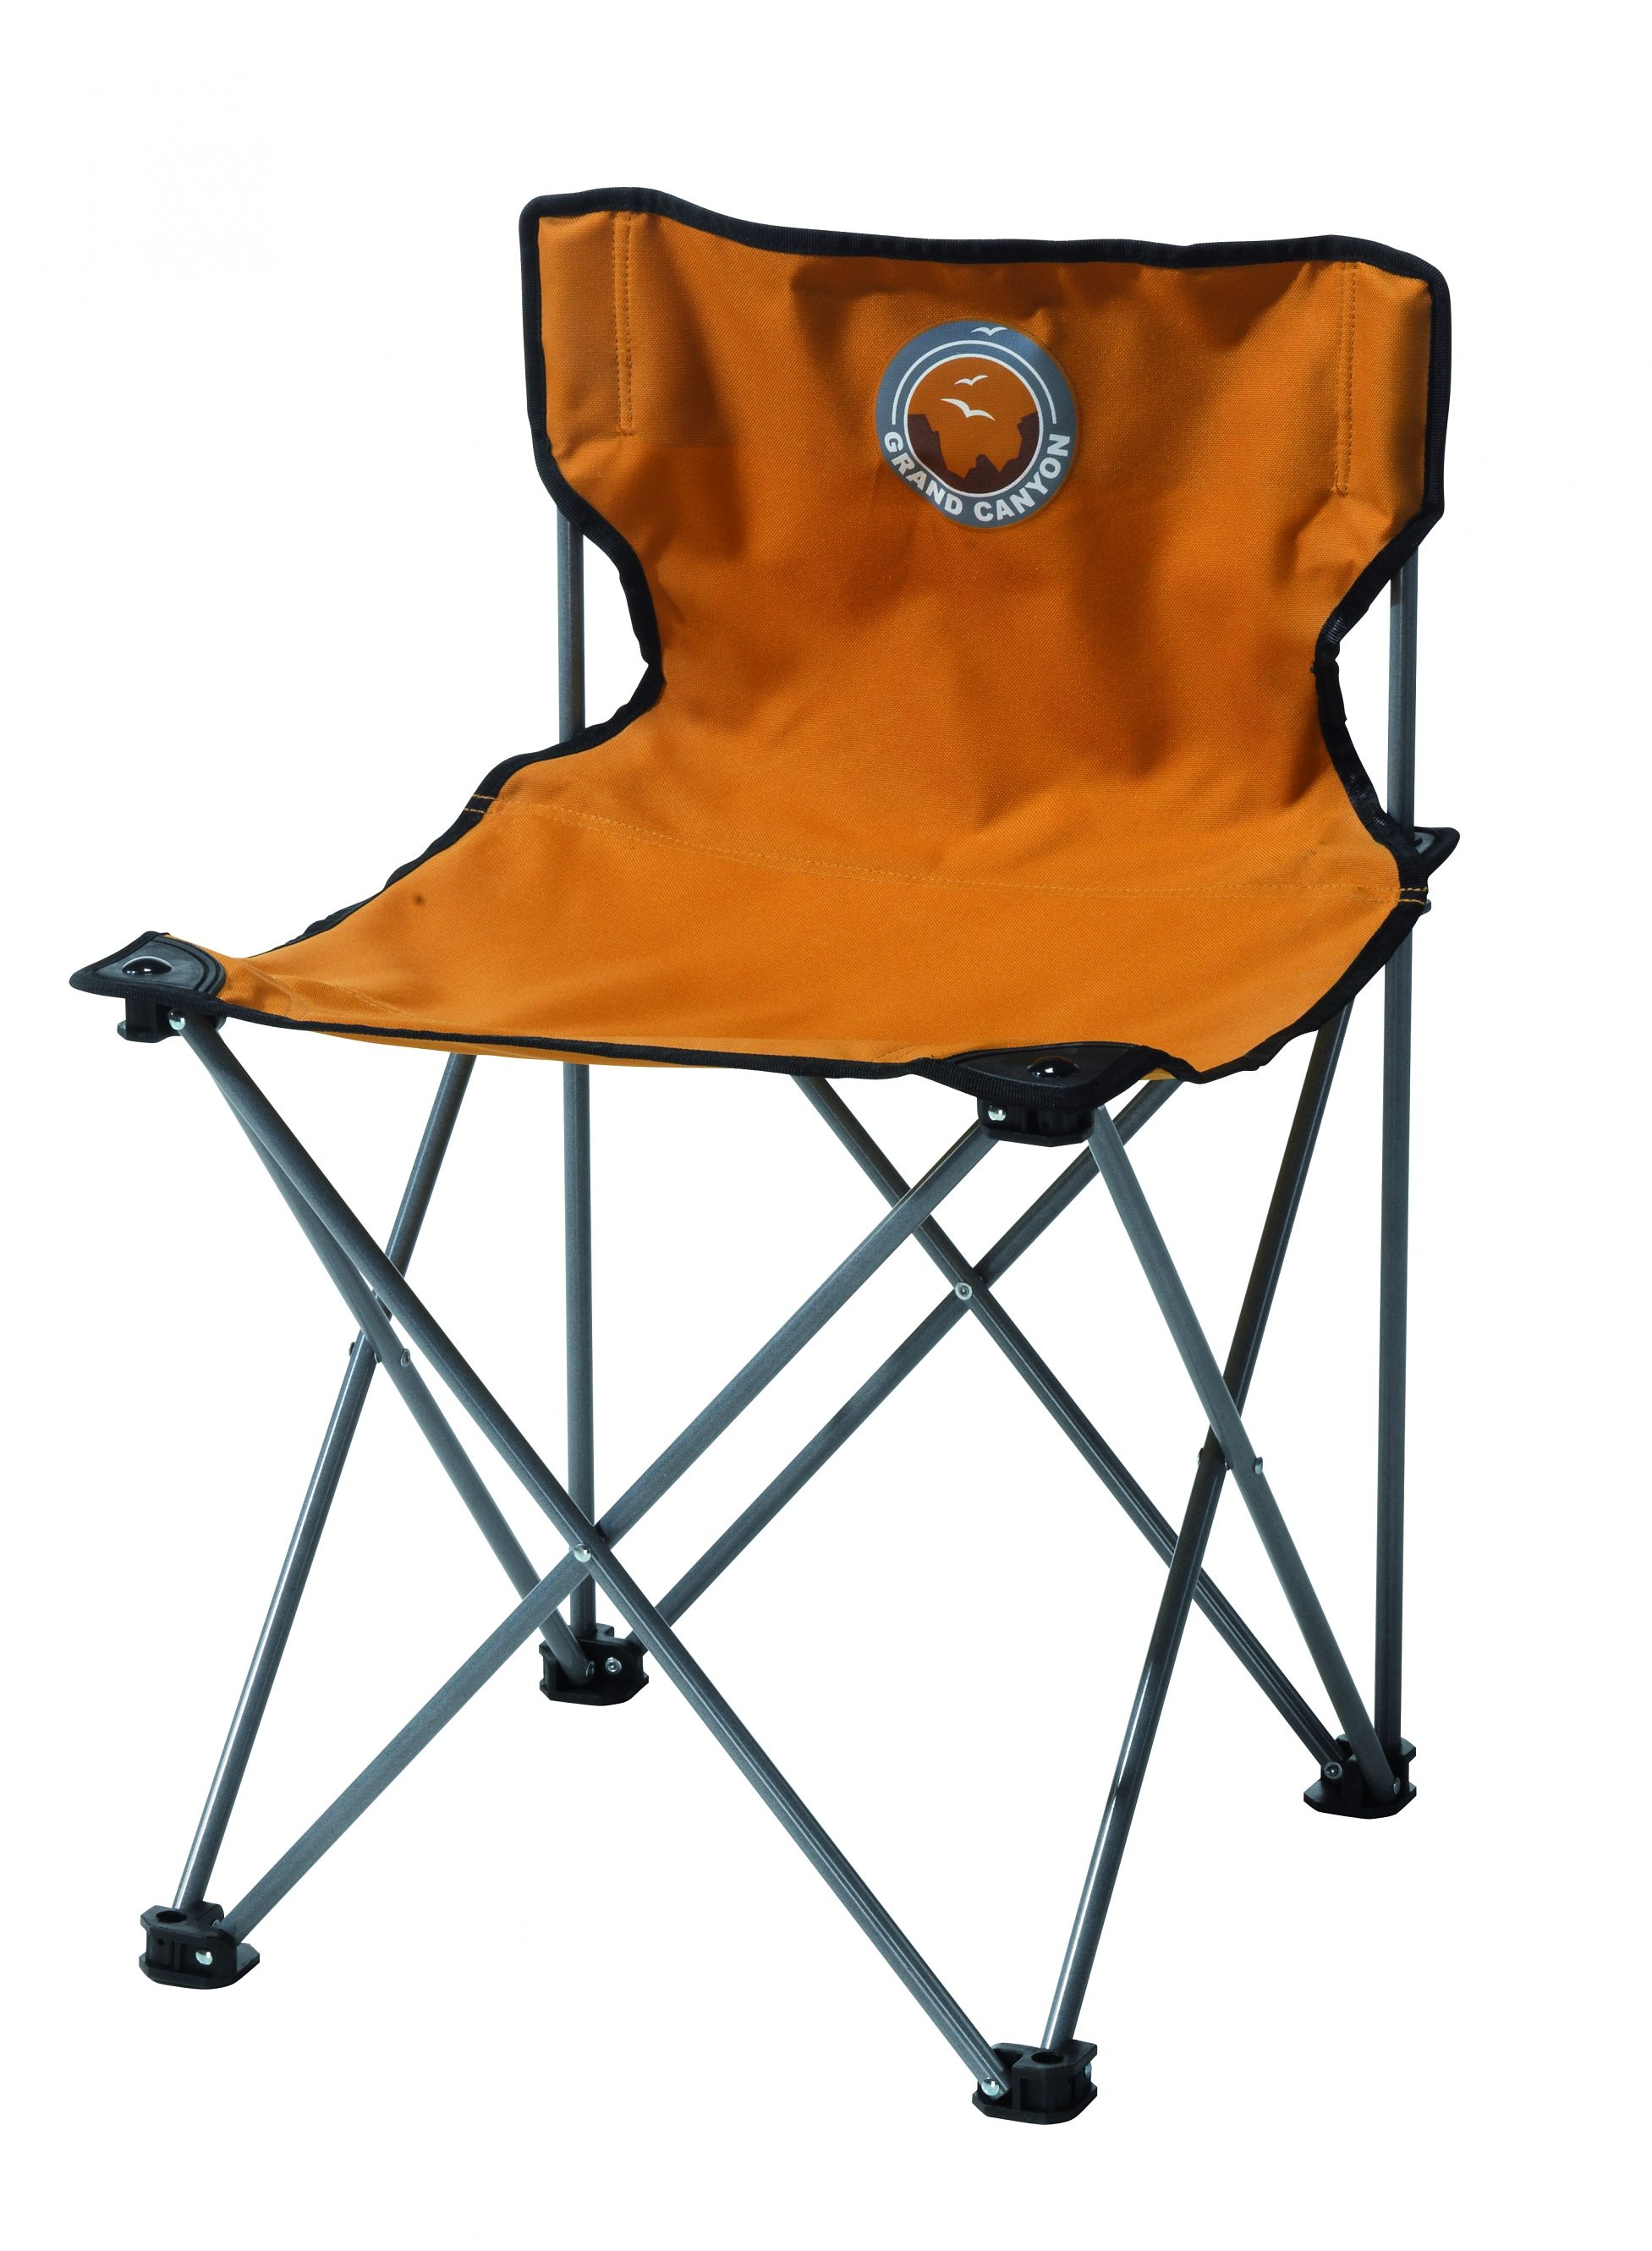 Grand Canyon Camping-Stuhl »Minima Foldable Chair«